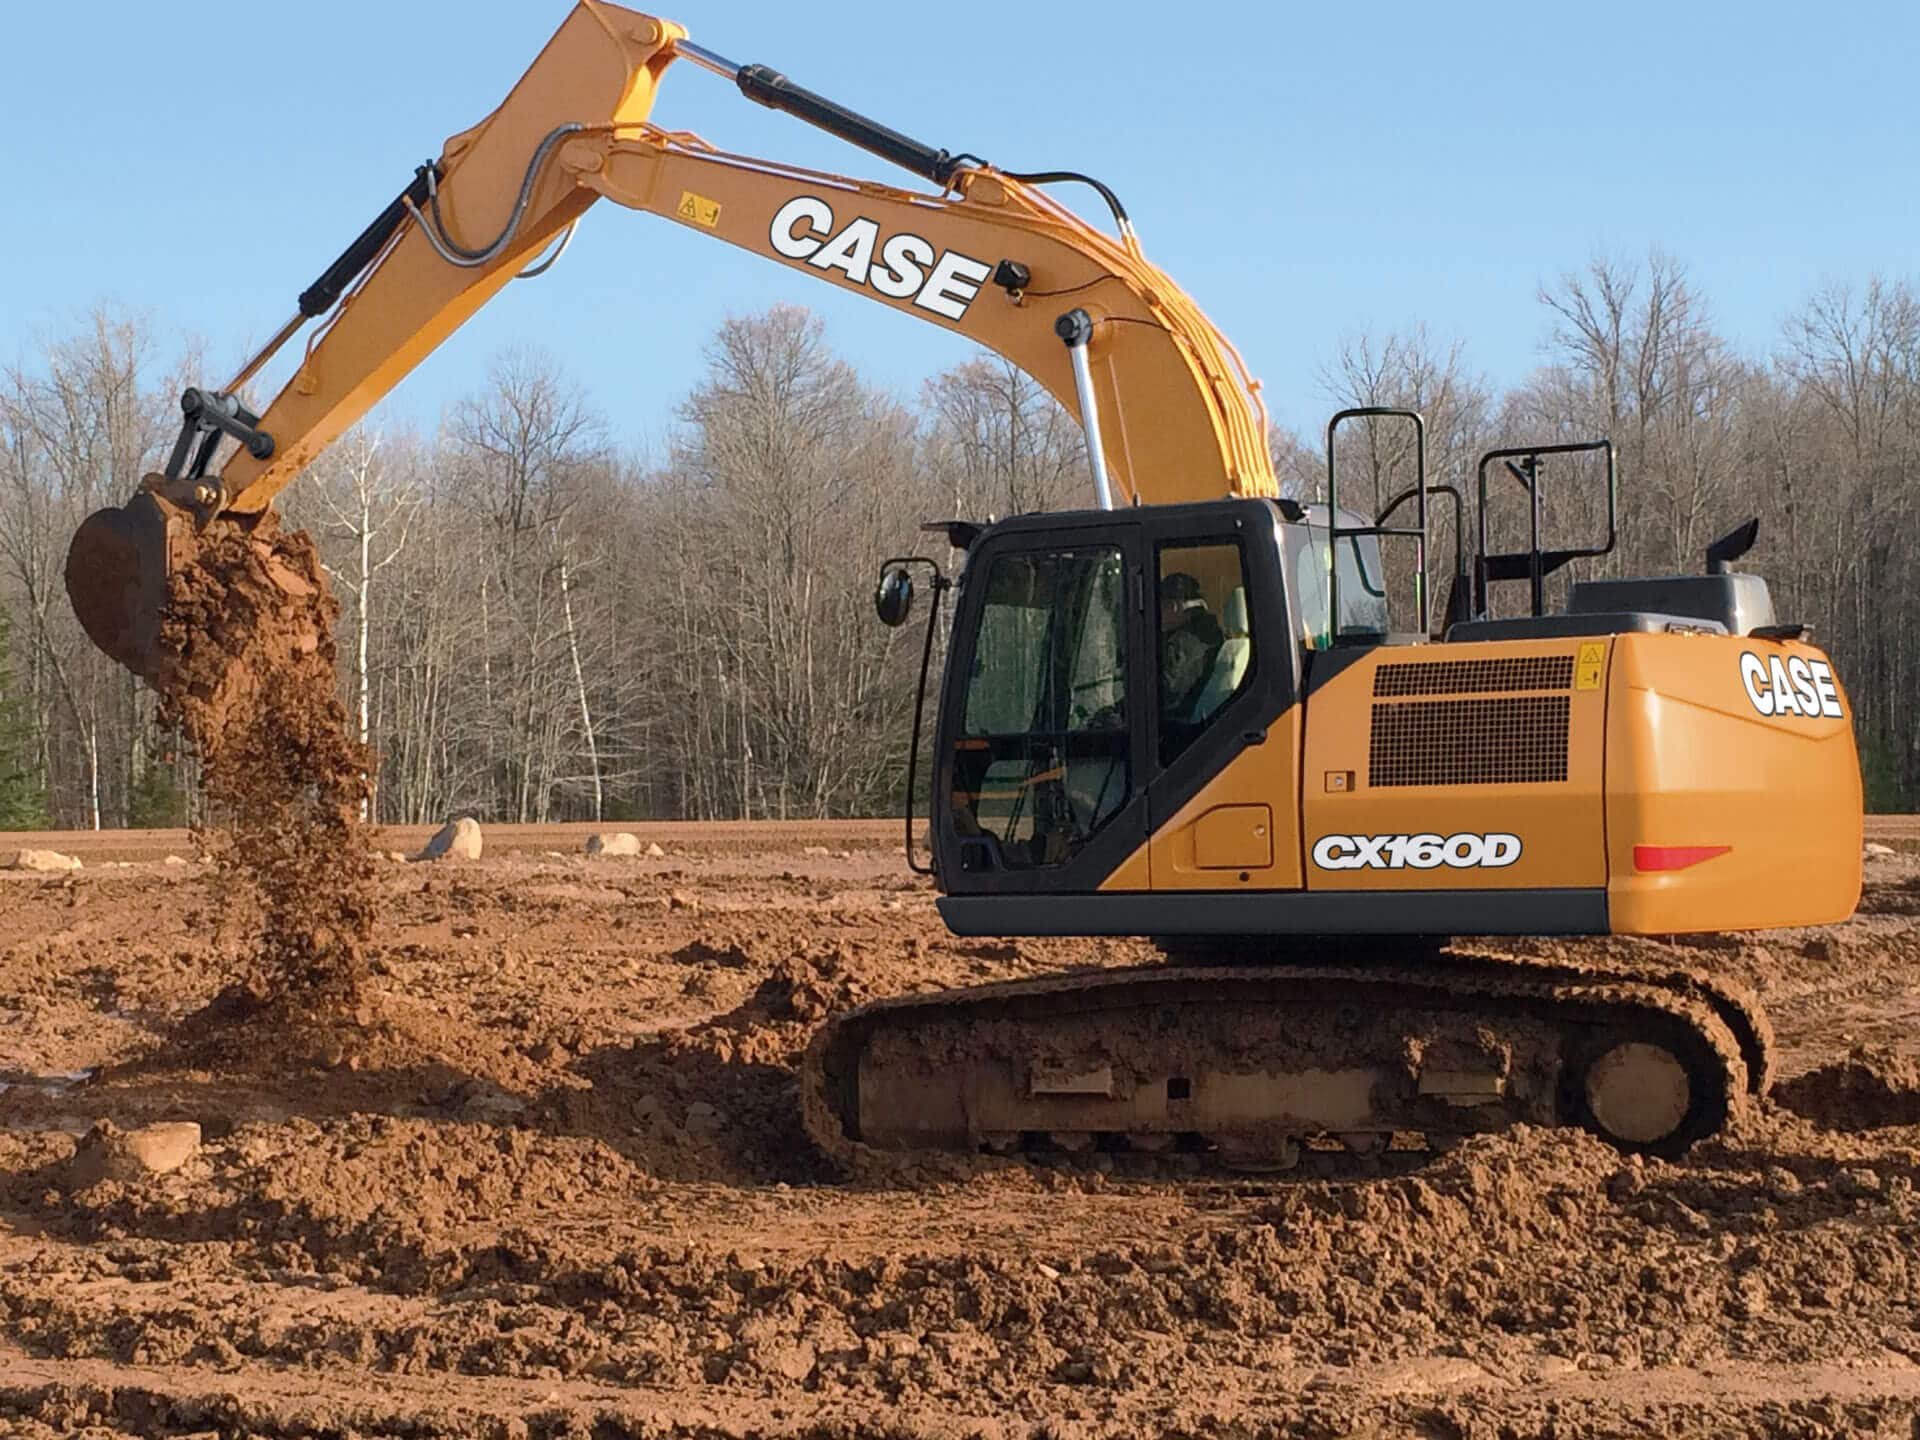 Volvo Dealers Nh >> CASE CX160D Excavator | CASE Construction Equipment